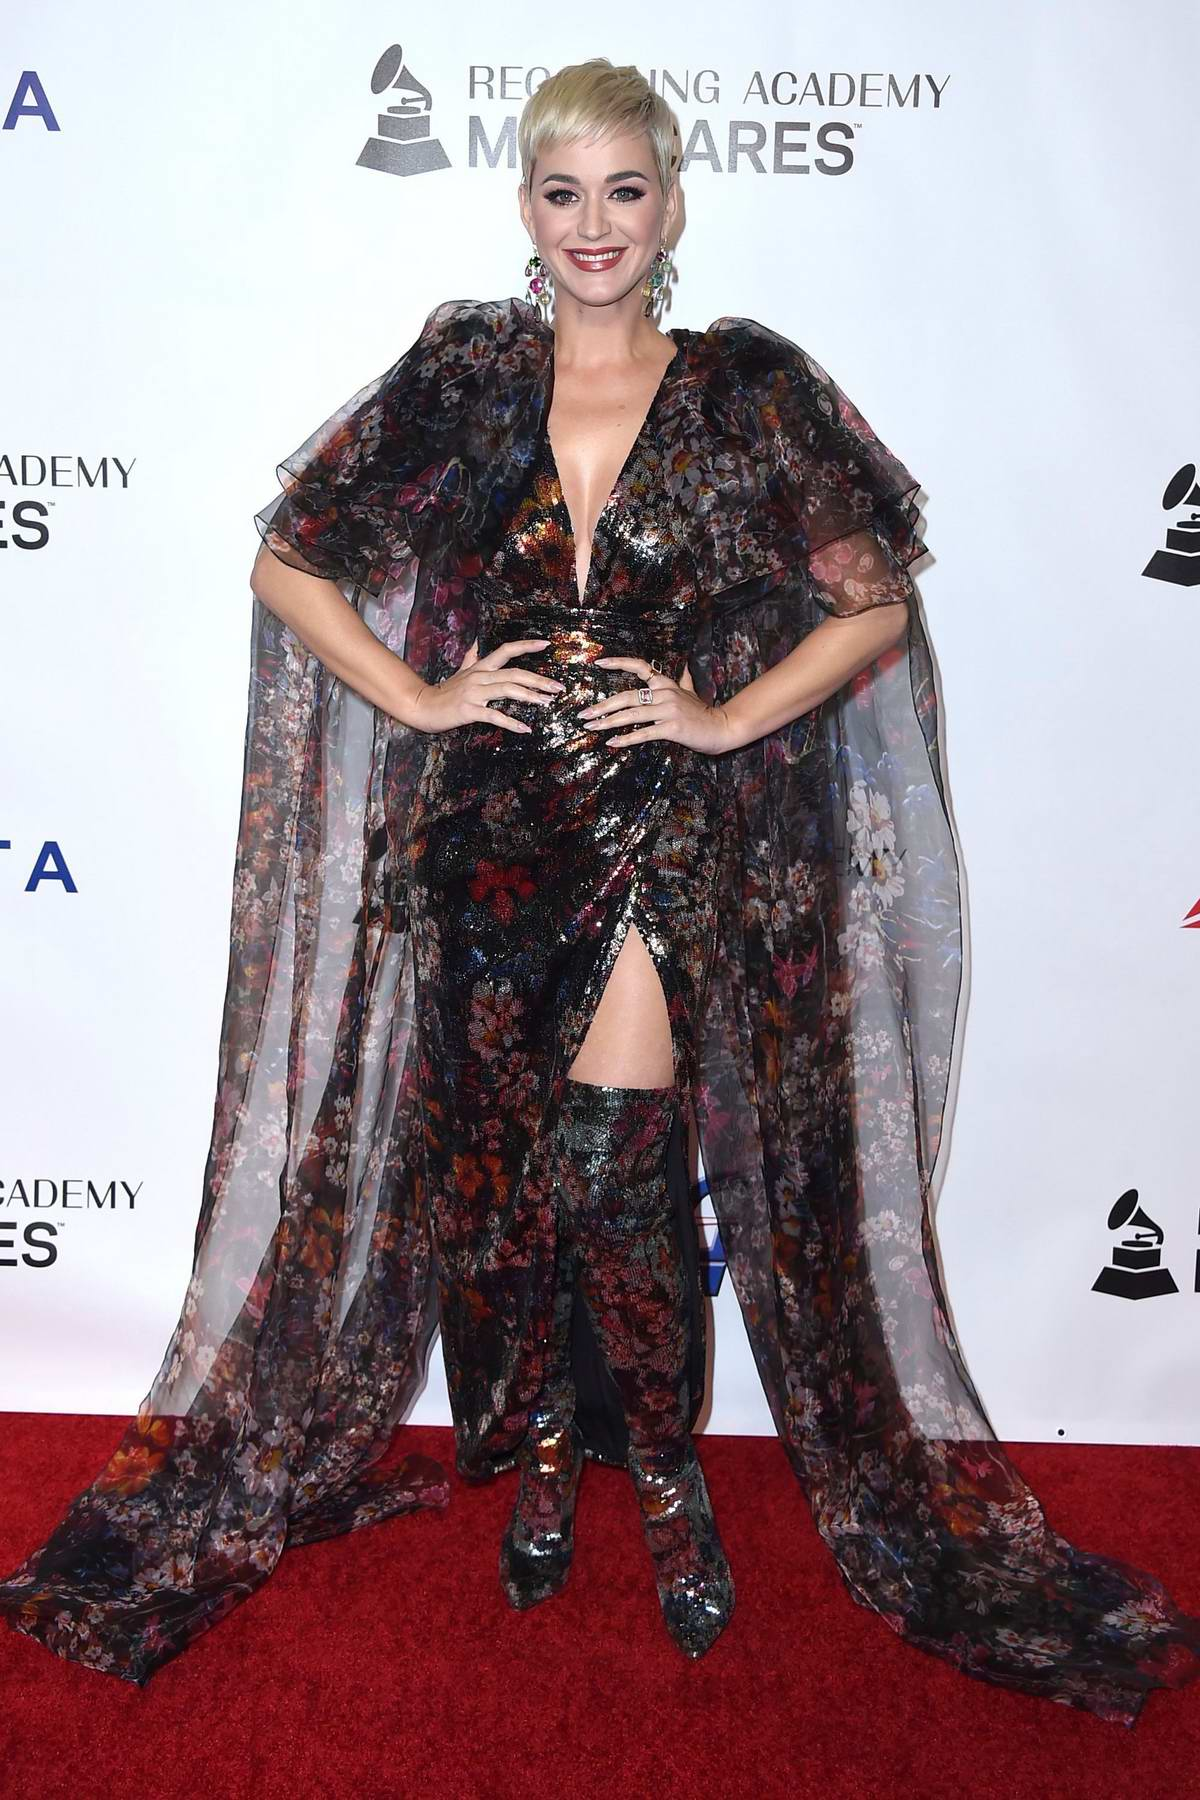 Katy Perry attends the MusiCares 2019 Person of the Year honoring Dolly Parton event at the Los Angeles Convention Center in Los Angeles